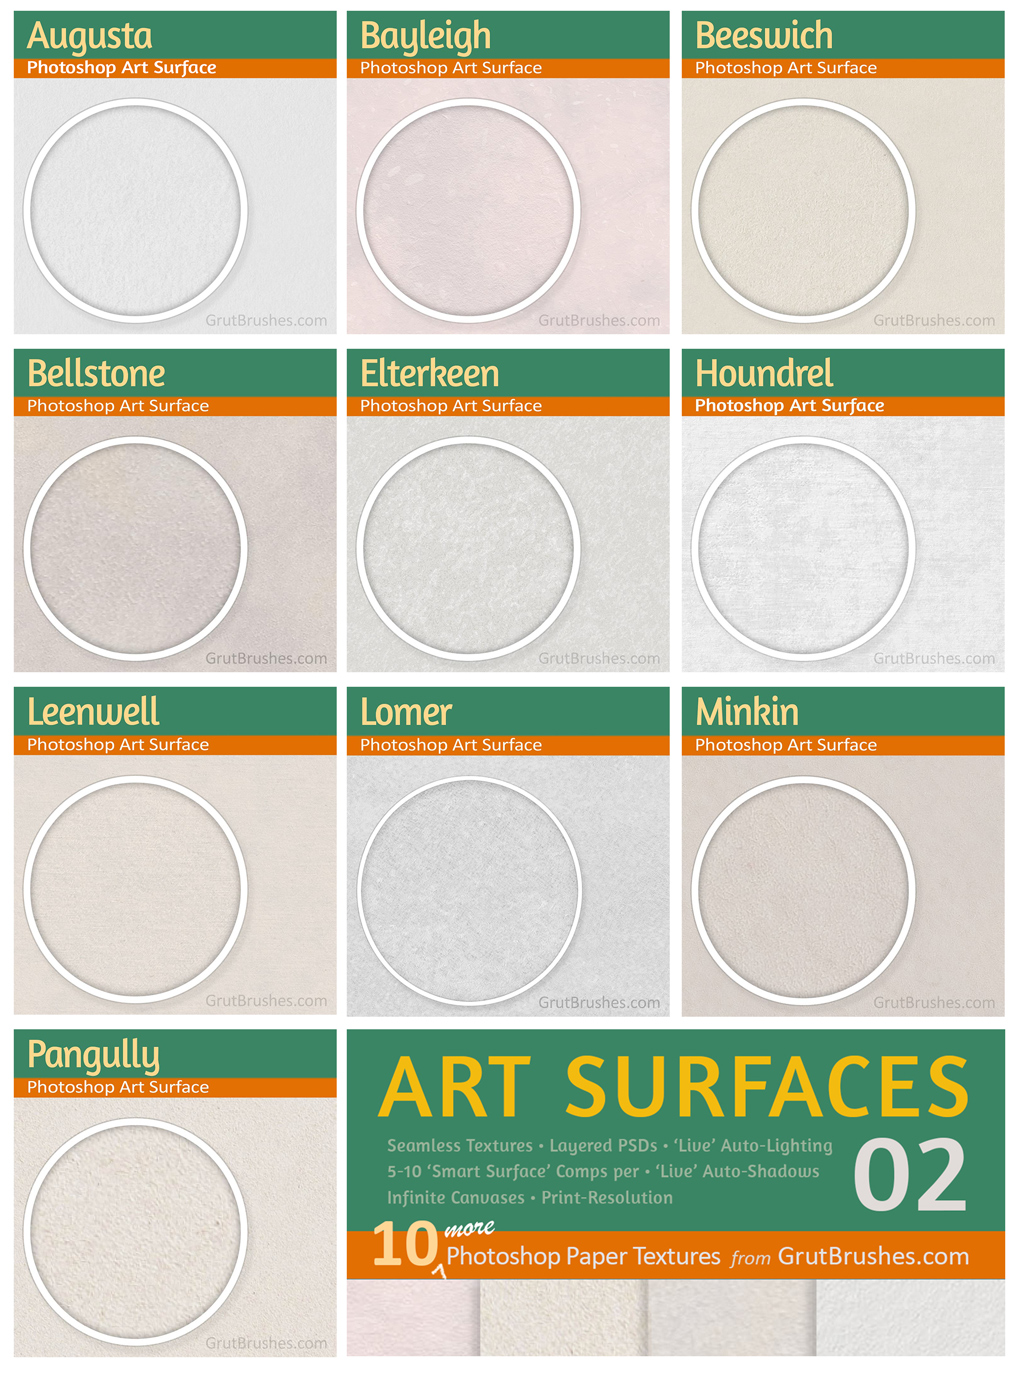 10 paper textures included in Art Surfaces 02